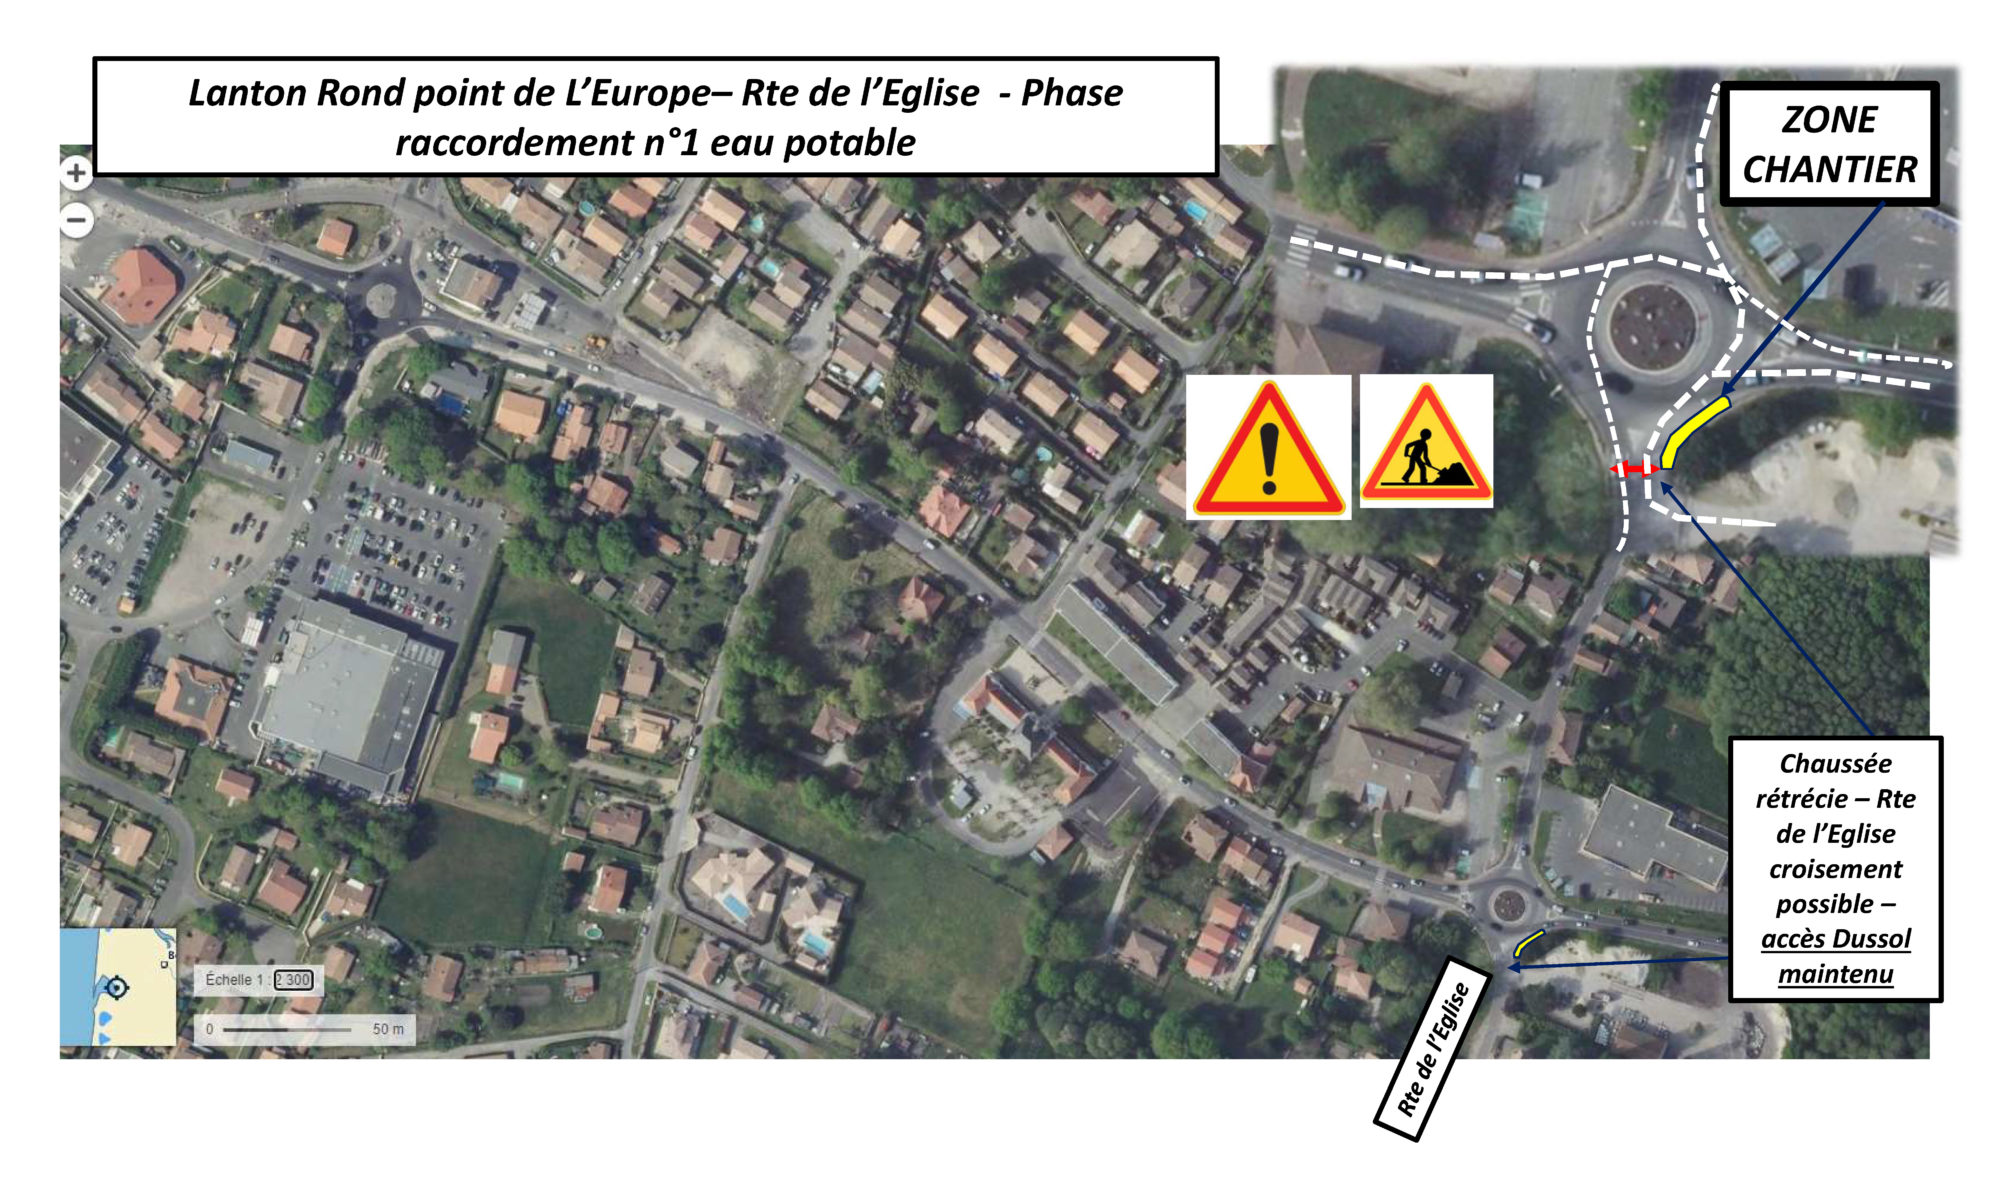 Raccordements rond-point de l'Europe - phase 1